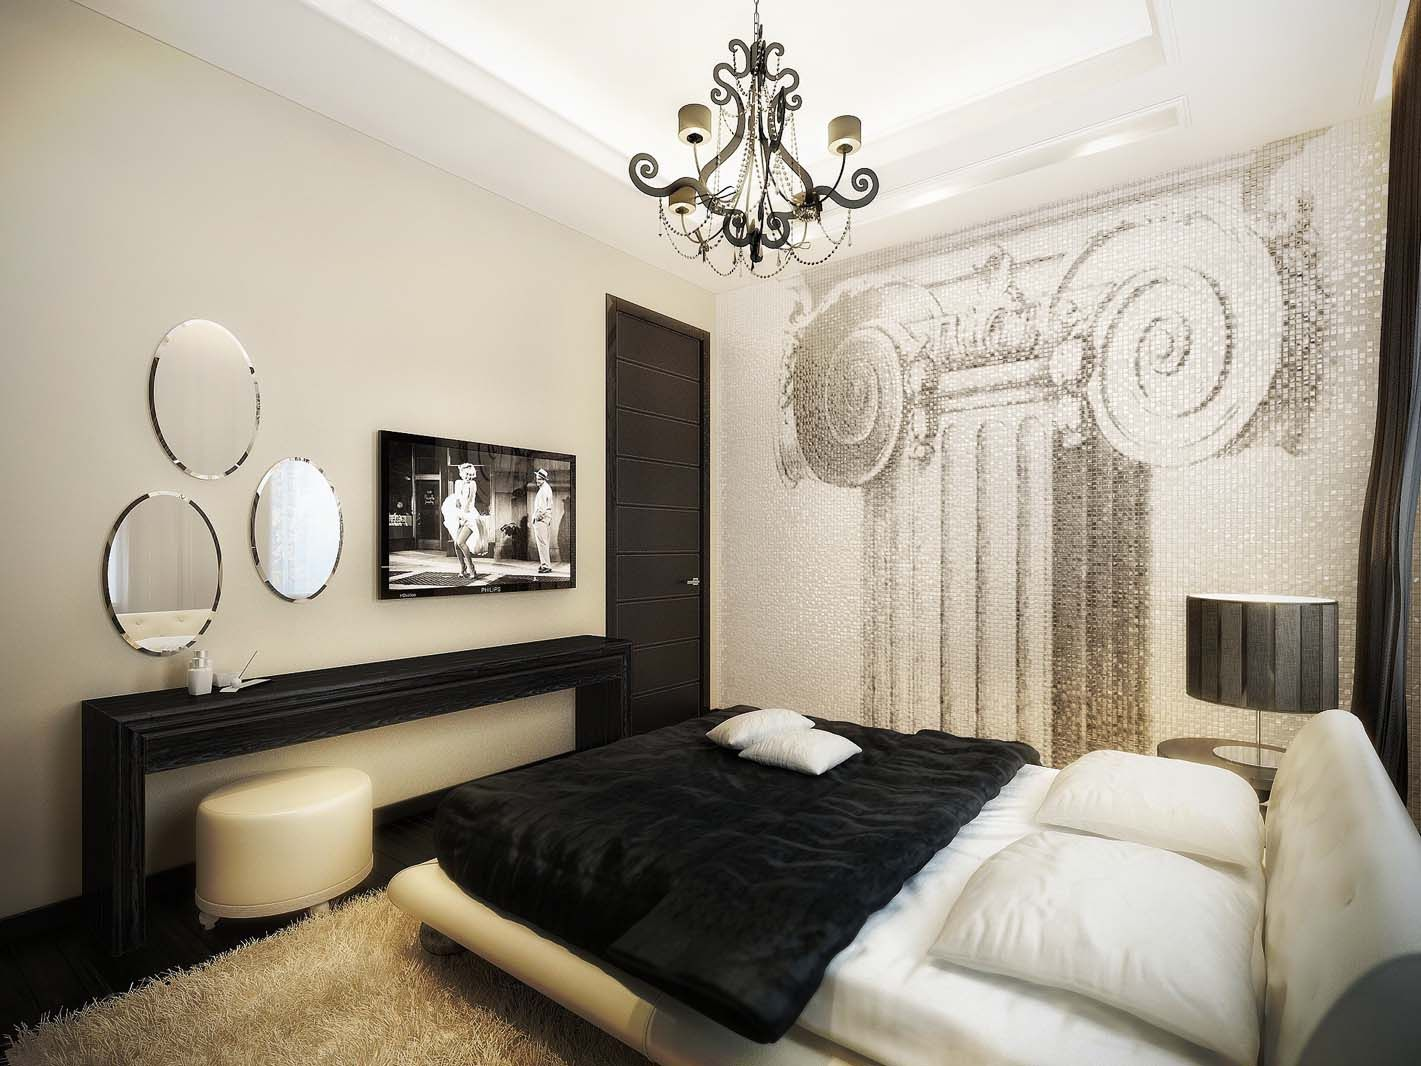 Bedroom Designs Vintage luxury vintage apartment master bedroom decor #homedecor